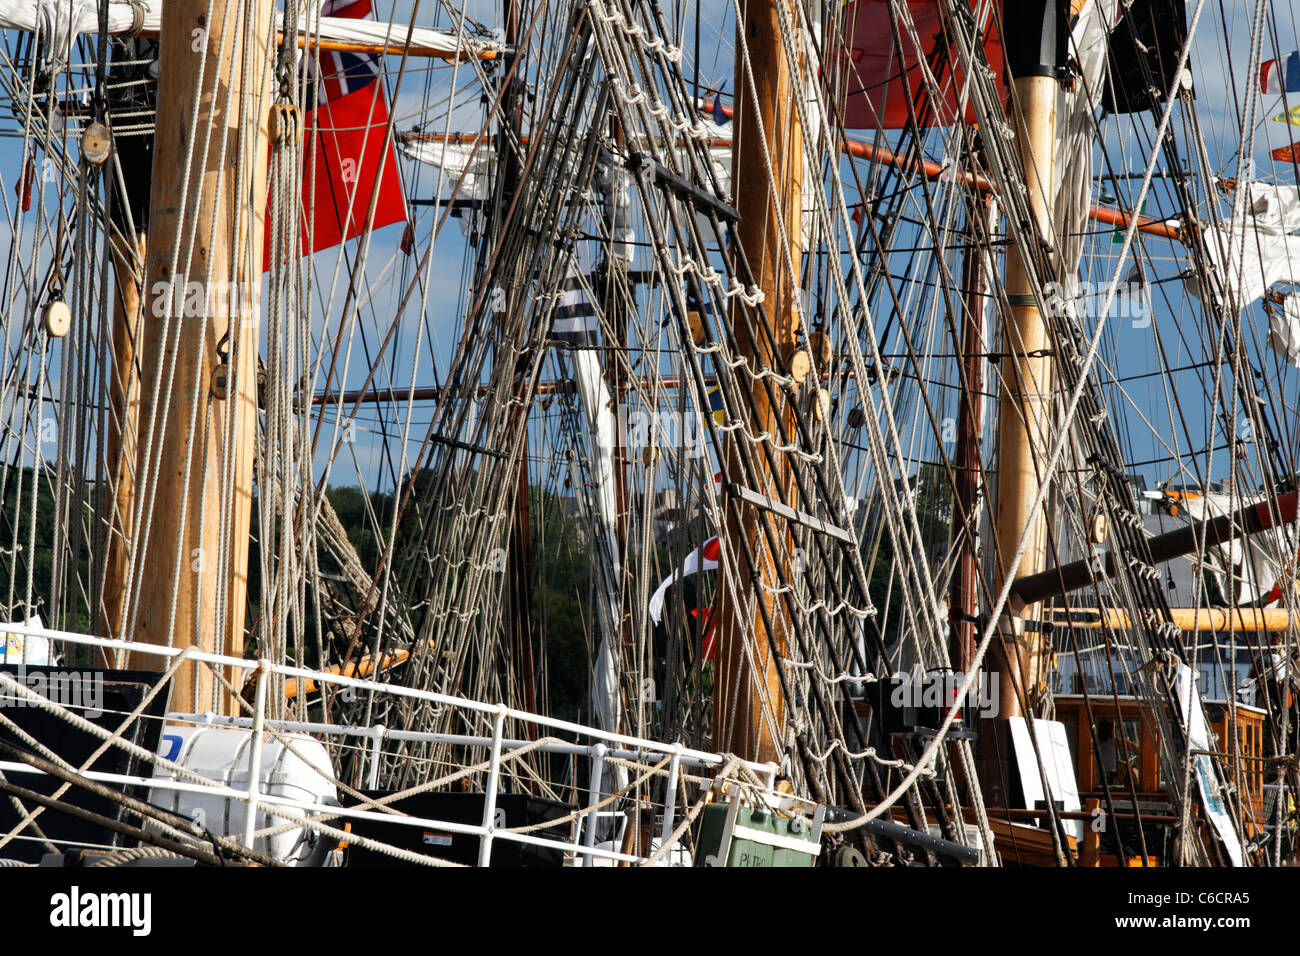 Masts and rigging of tall ships berthed at Douarnenez, meeting of traditional wooden boats (Finistère, Brittany, - Stock Image